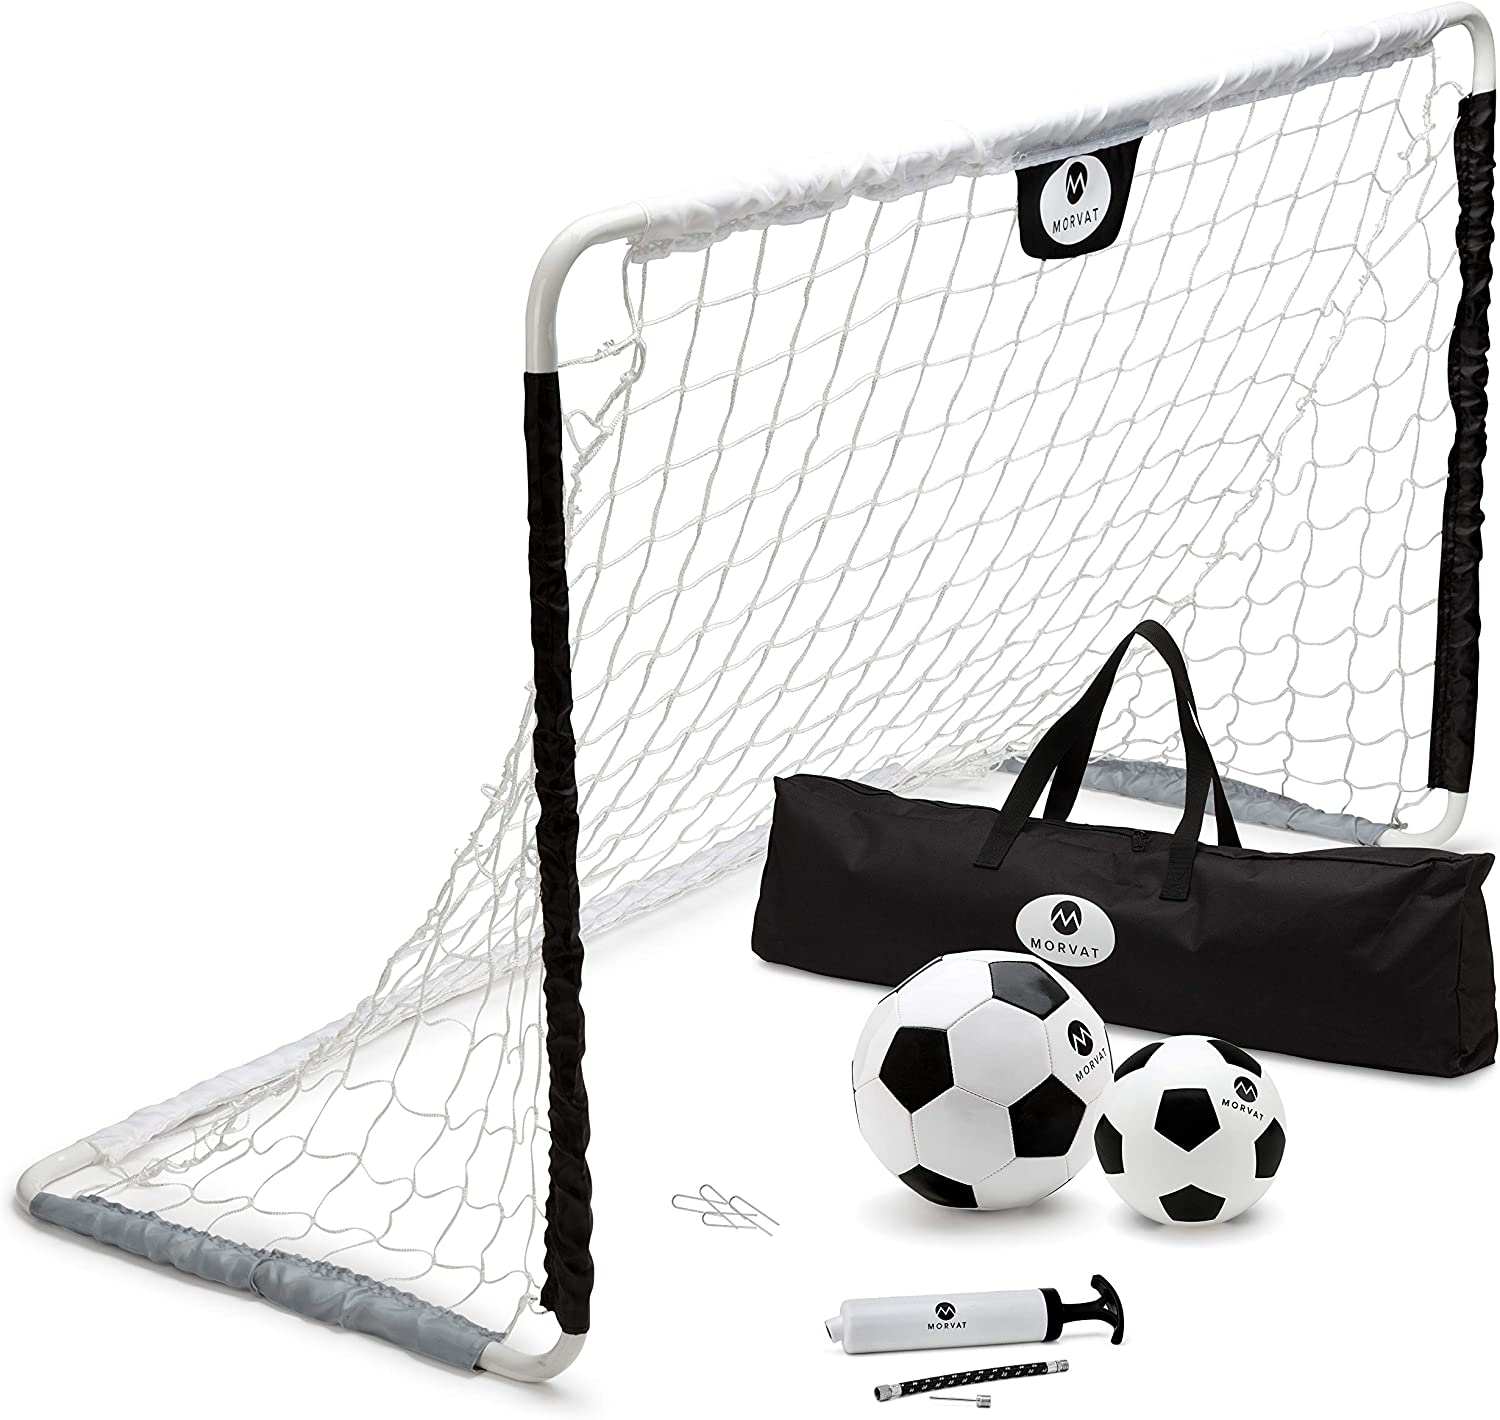 Morvat Premium Portable Soccer Goal Set | Endless Hours of Fun and Playing Time | Indoor and Outdoor | Extra Strong, Durable Quality